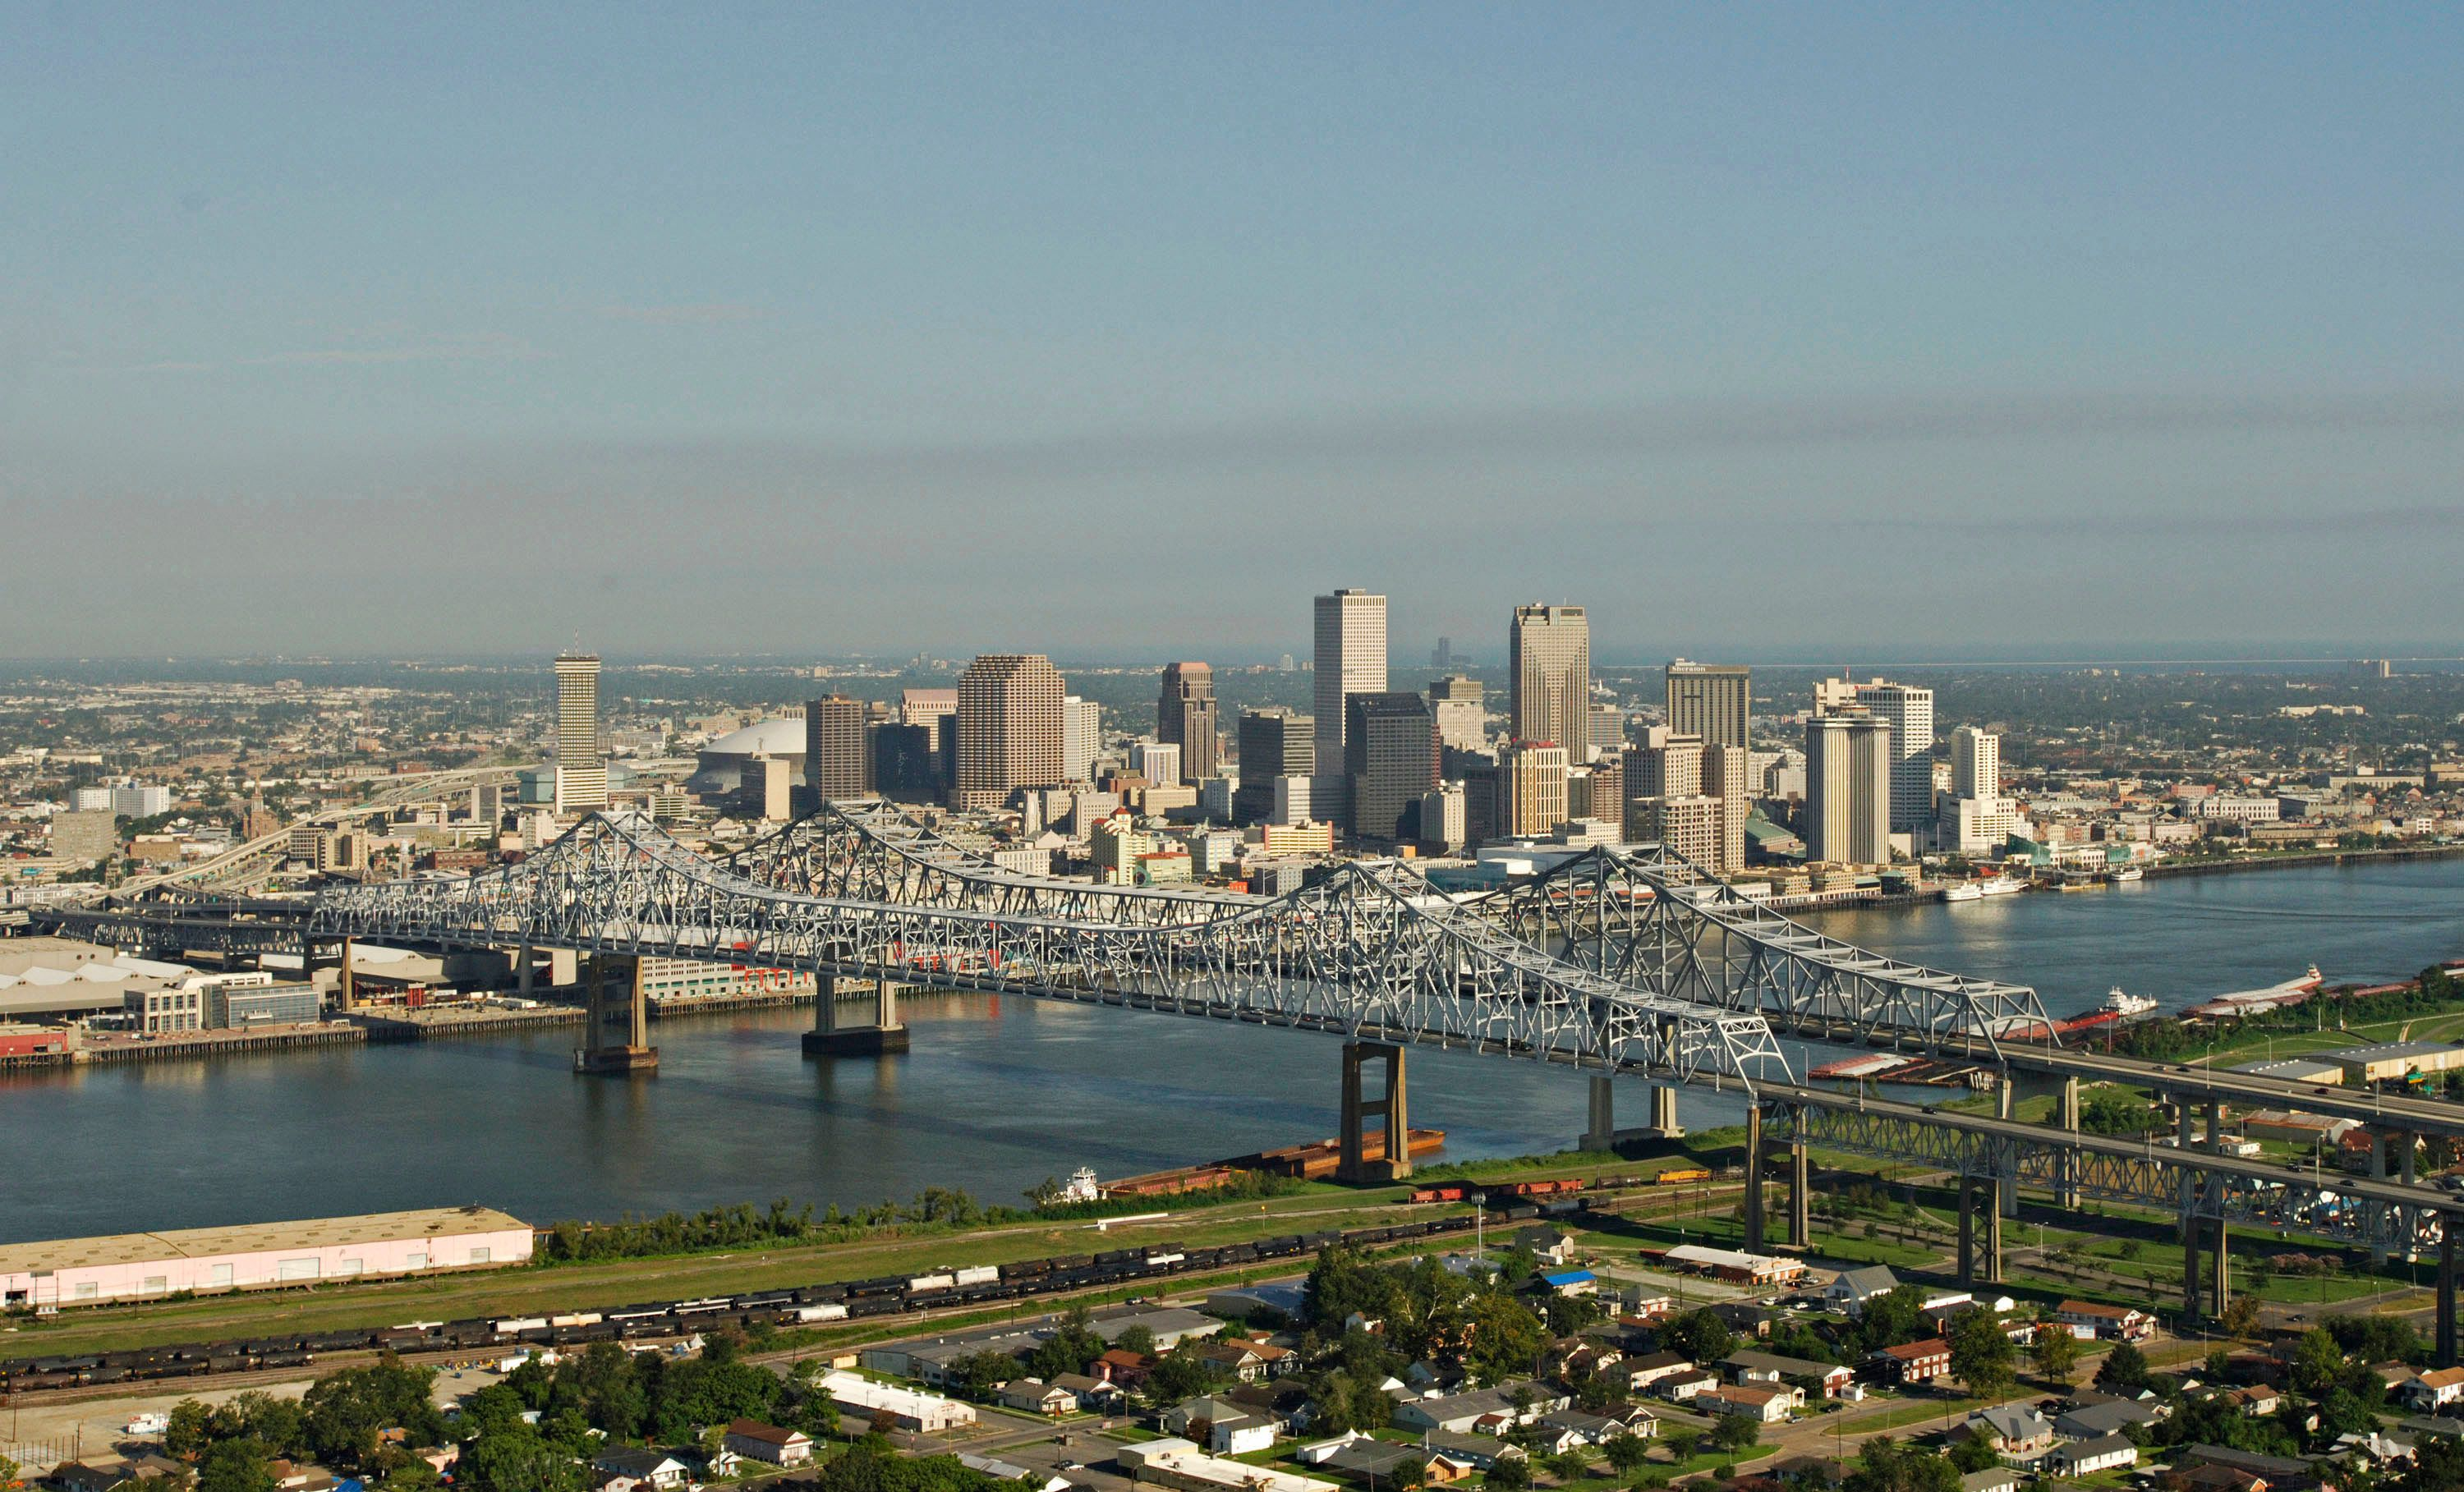 New Orleans, a city founded in 1718, is due to have its first woman mayor.LaToya Cantrell and Desiree Charbonnet procee